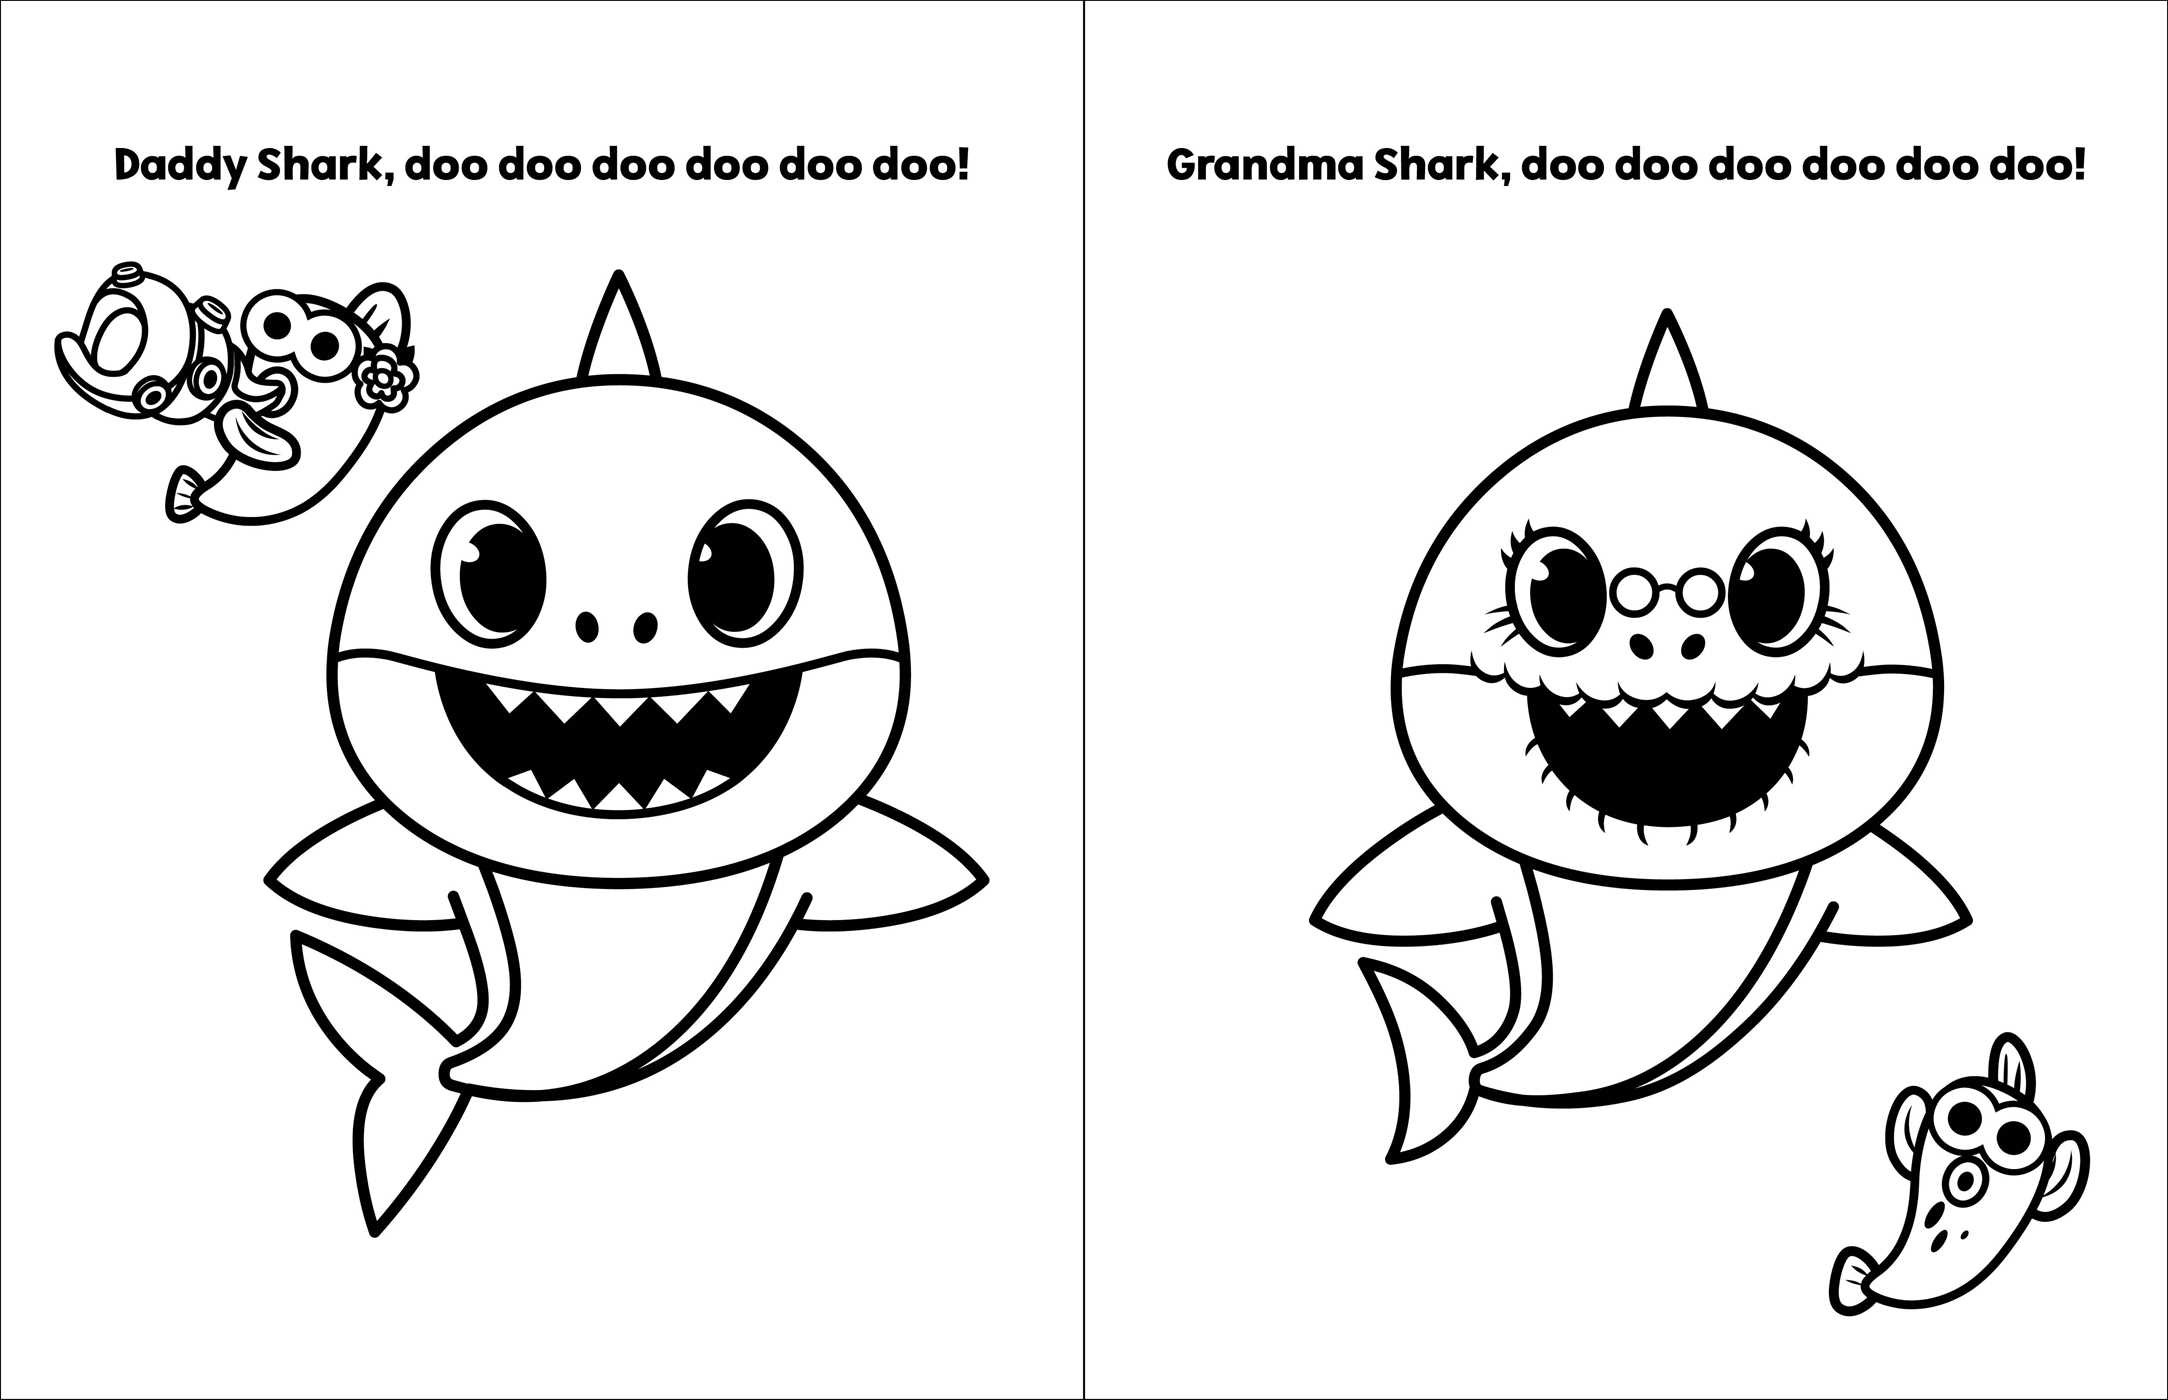 Mommy Shark Coloring Worksheet | Printable Worksheets and Activities for  Teachers, Parents, Tutors and Homeschool Families